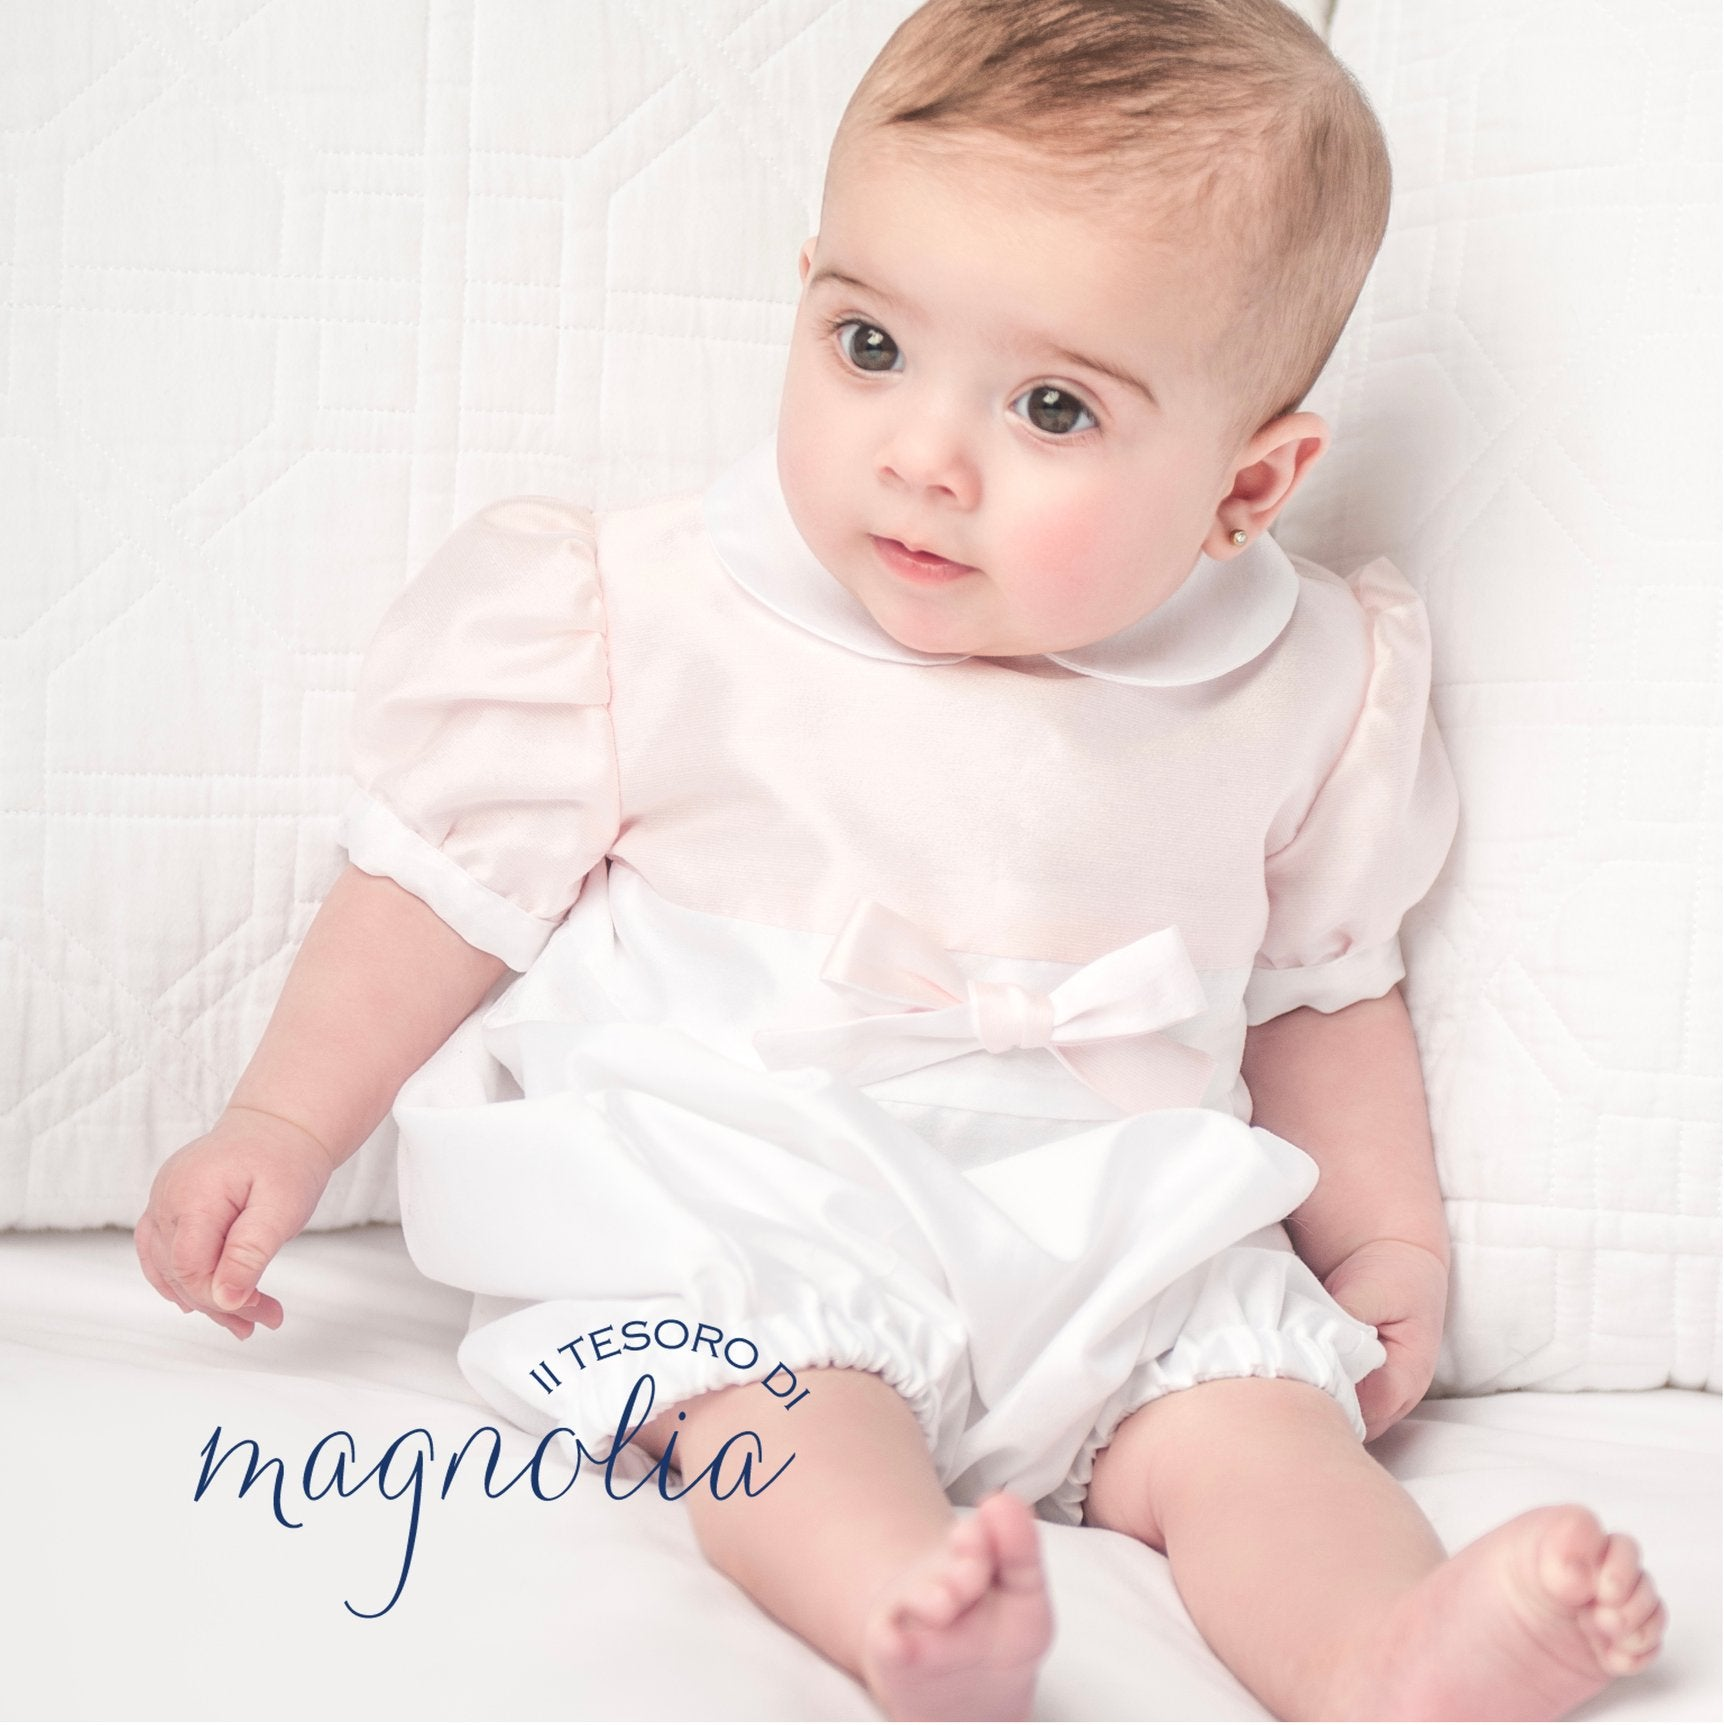 f0722920d20 Magnolia Baby Layette - Pima Cotton Baby Clothes and Pajamas